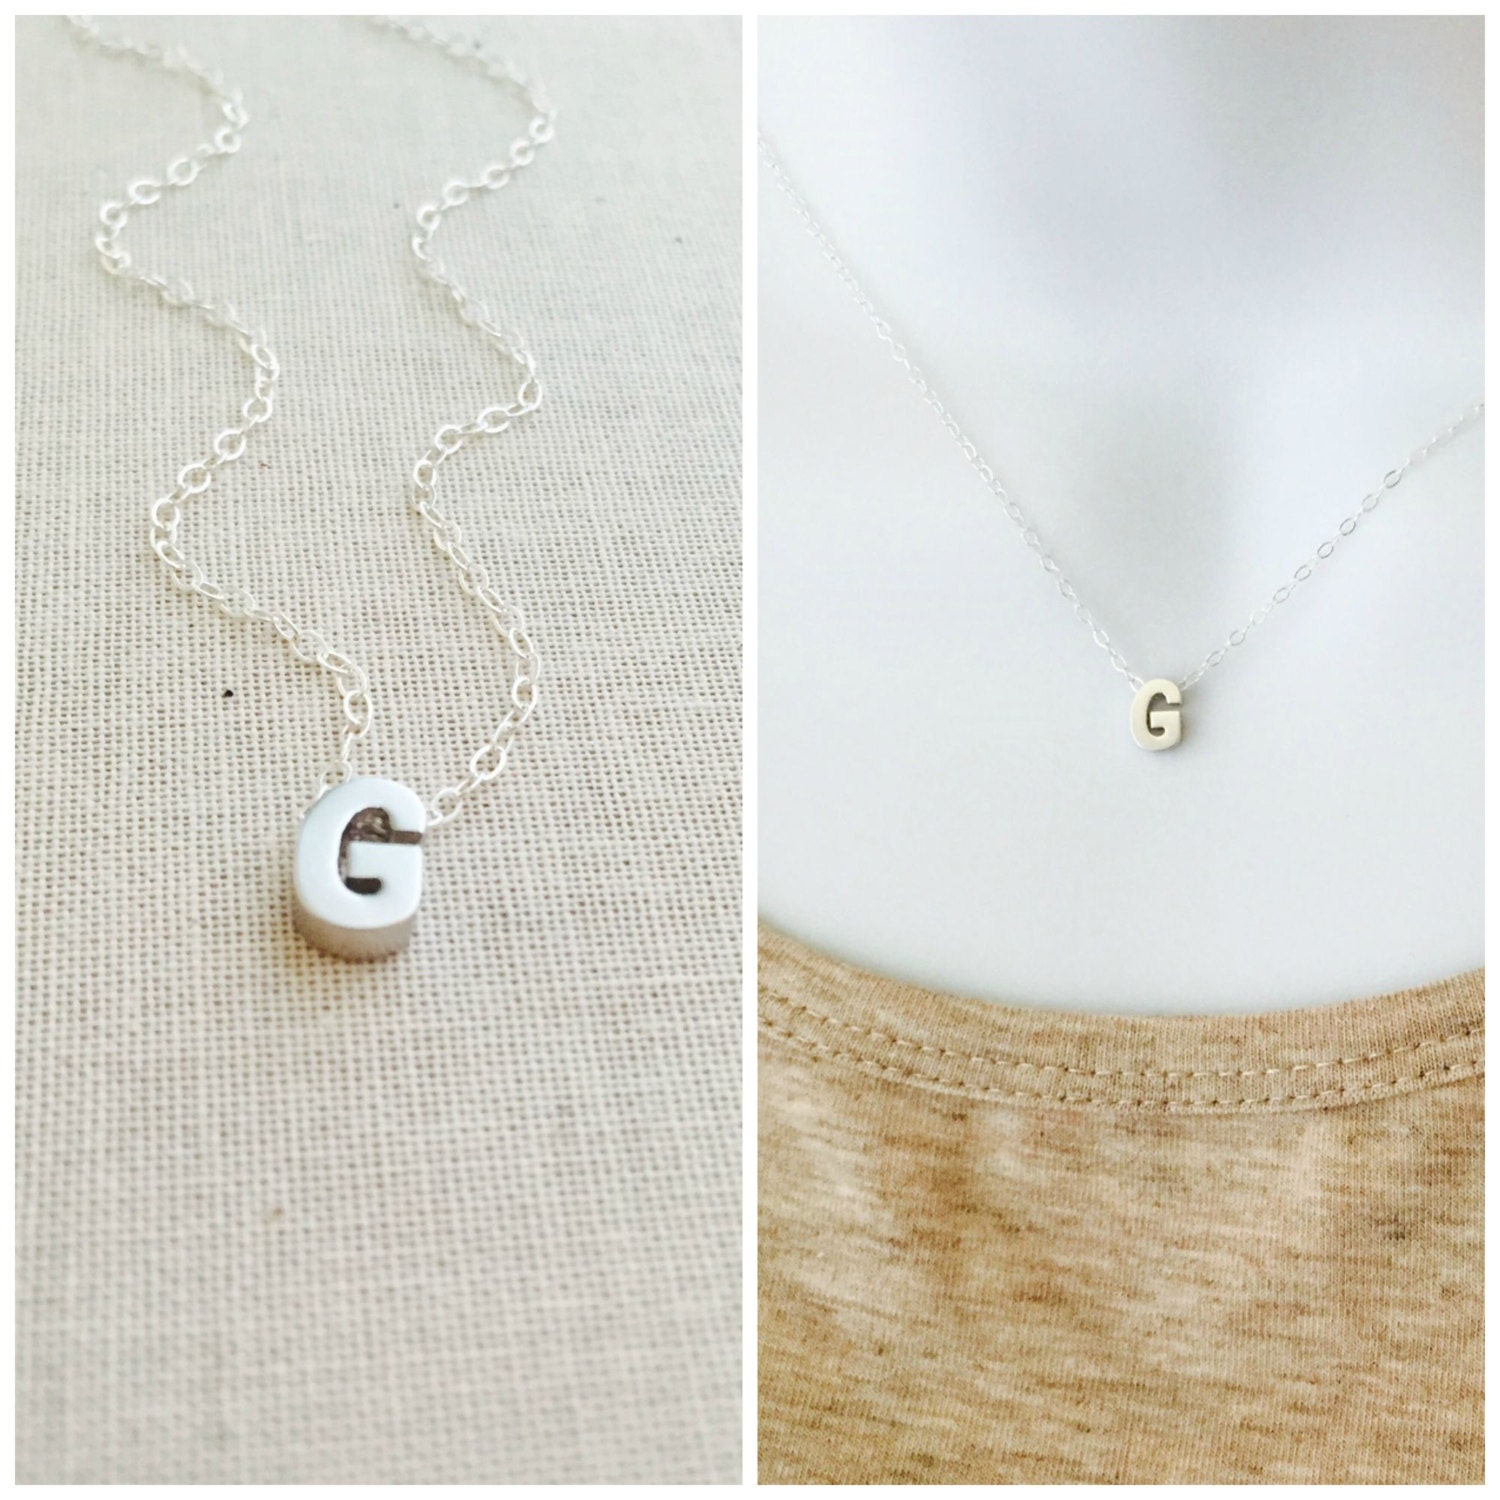 small initial g necklace silver initial necklace sterling silver chain letter g charm necklace letter g pendant everyday necklace